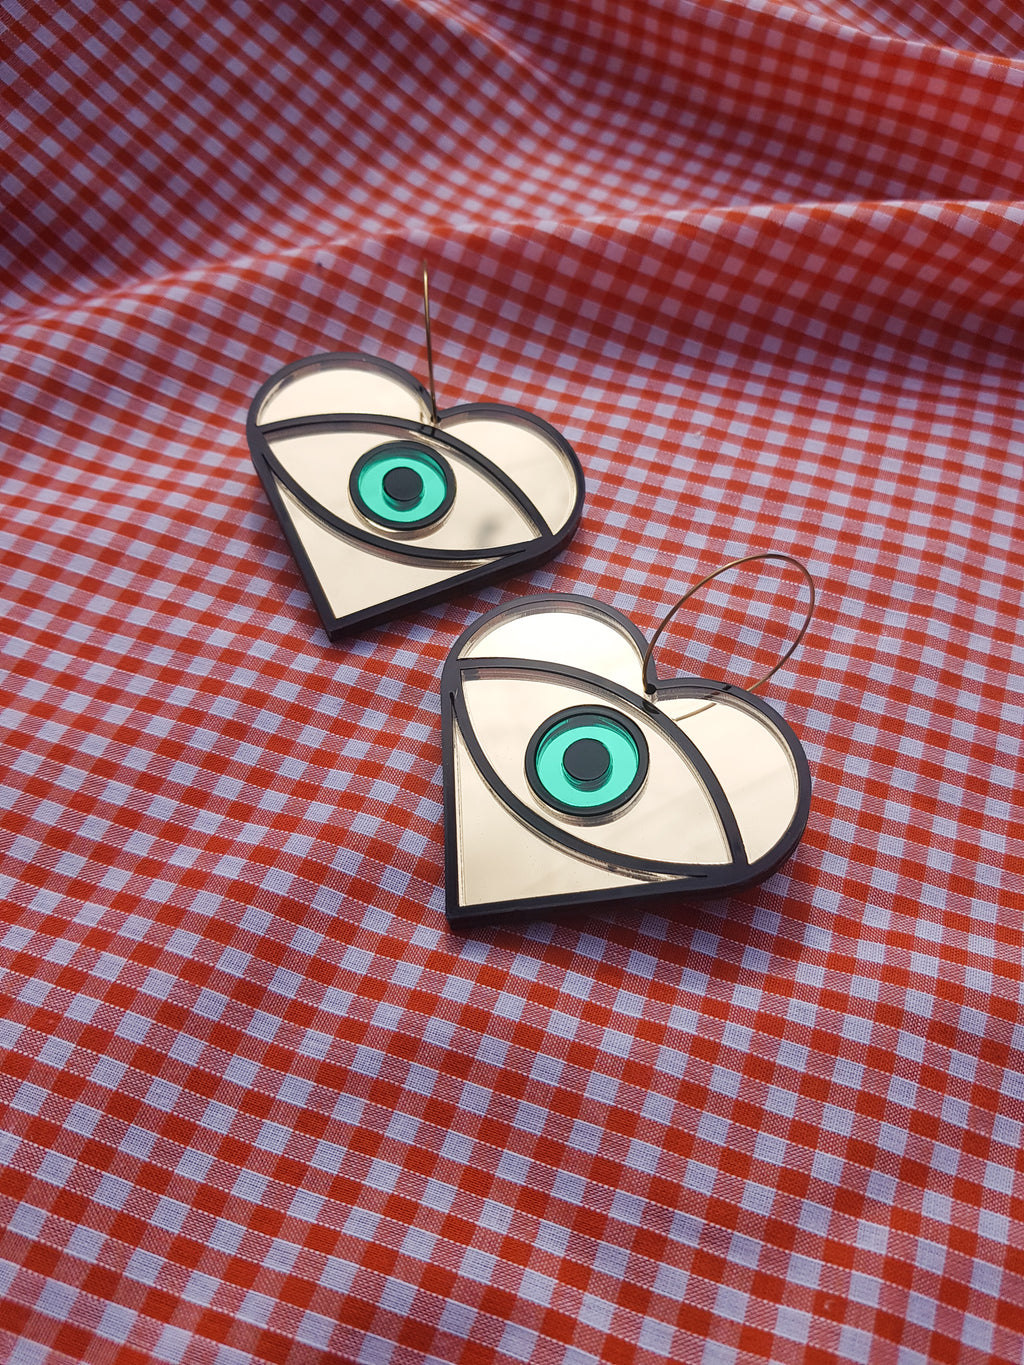 Large statement eye earrings